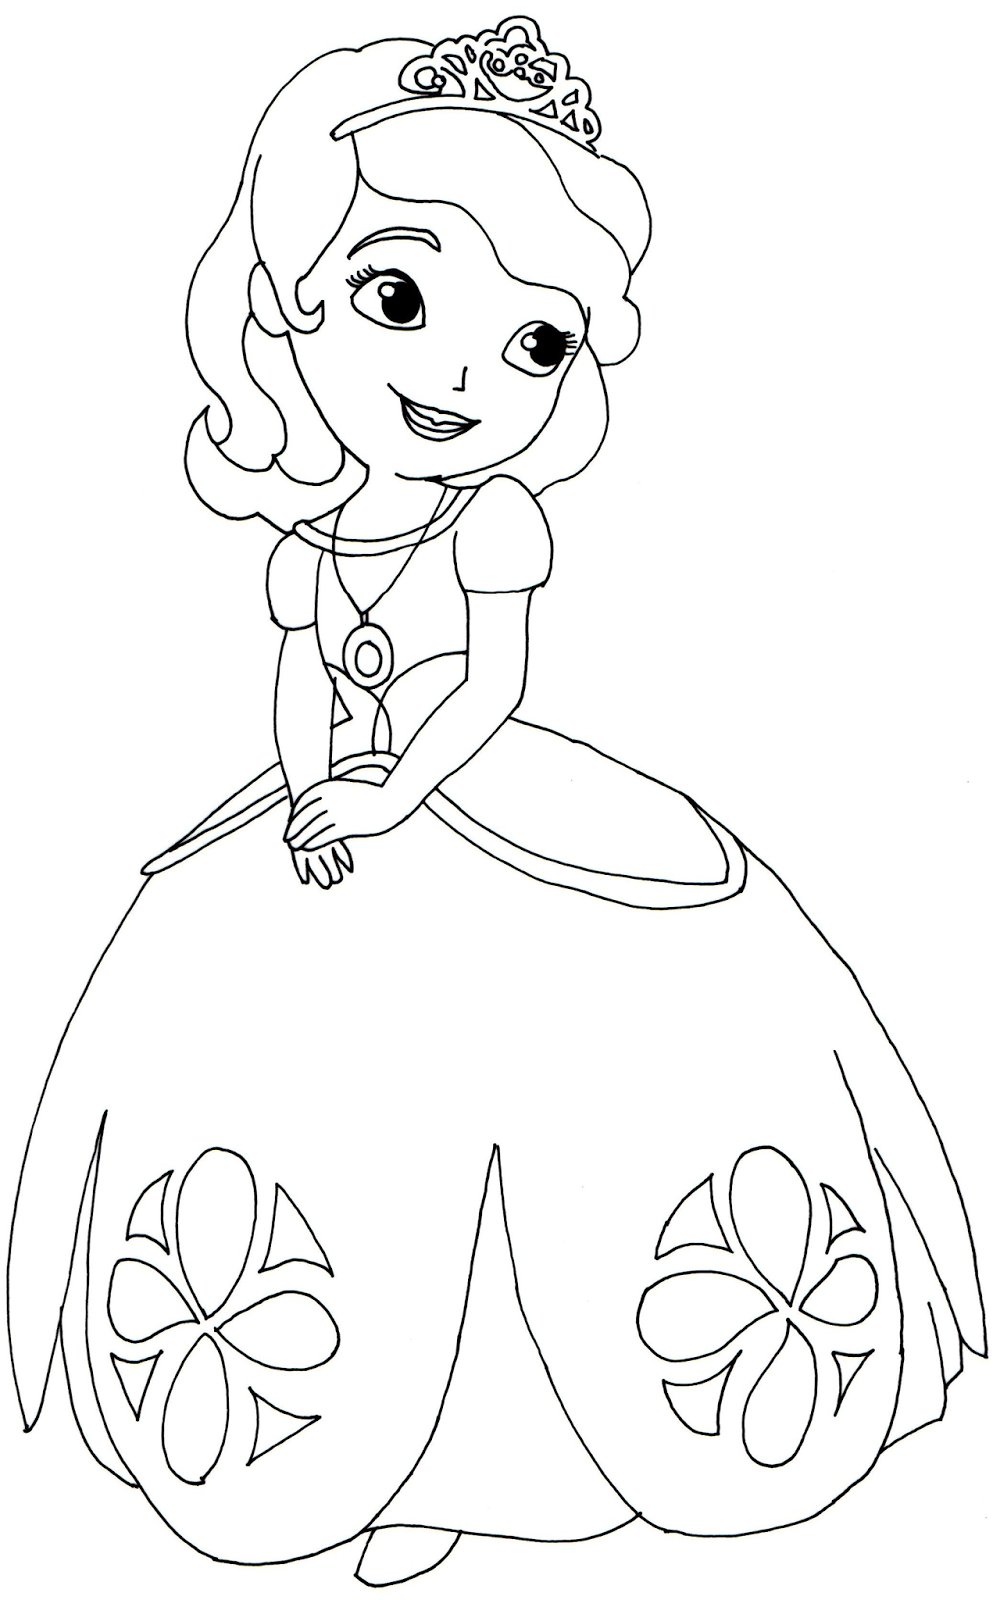 Sofia First Coloring Pages Cartoon Wallpapers Colouring